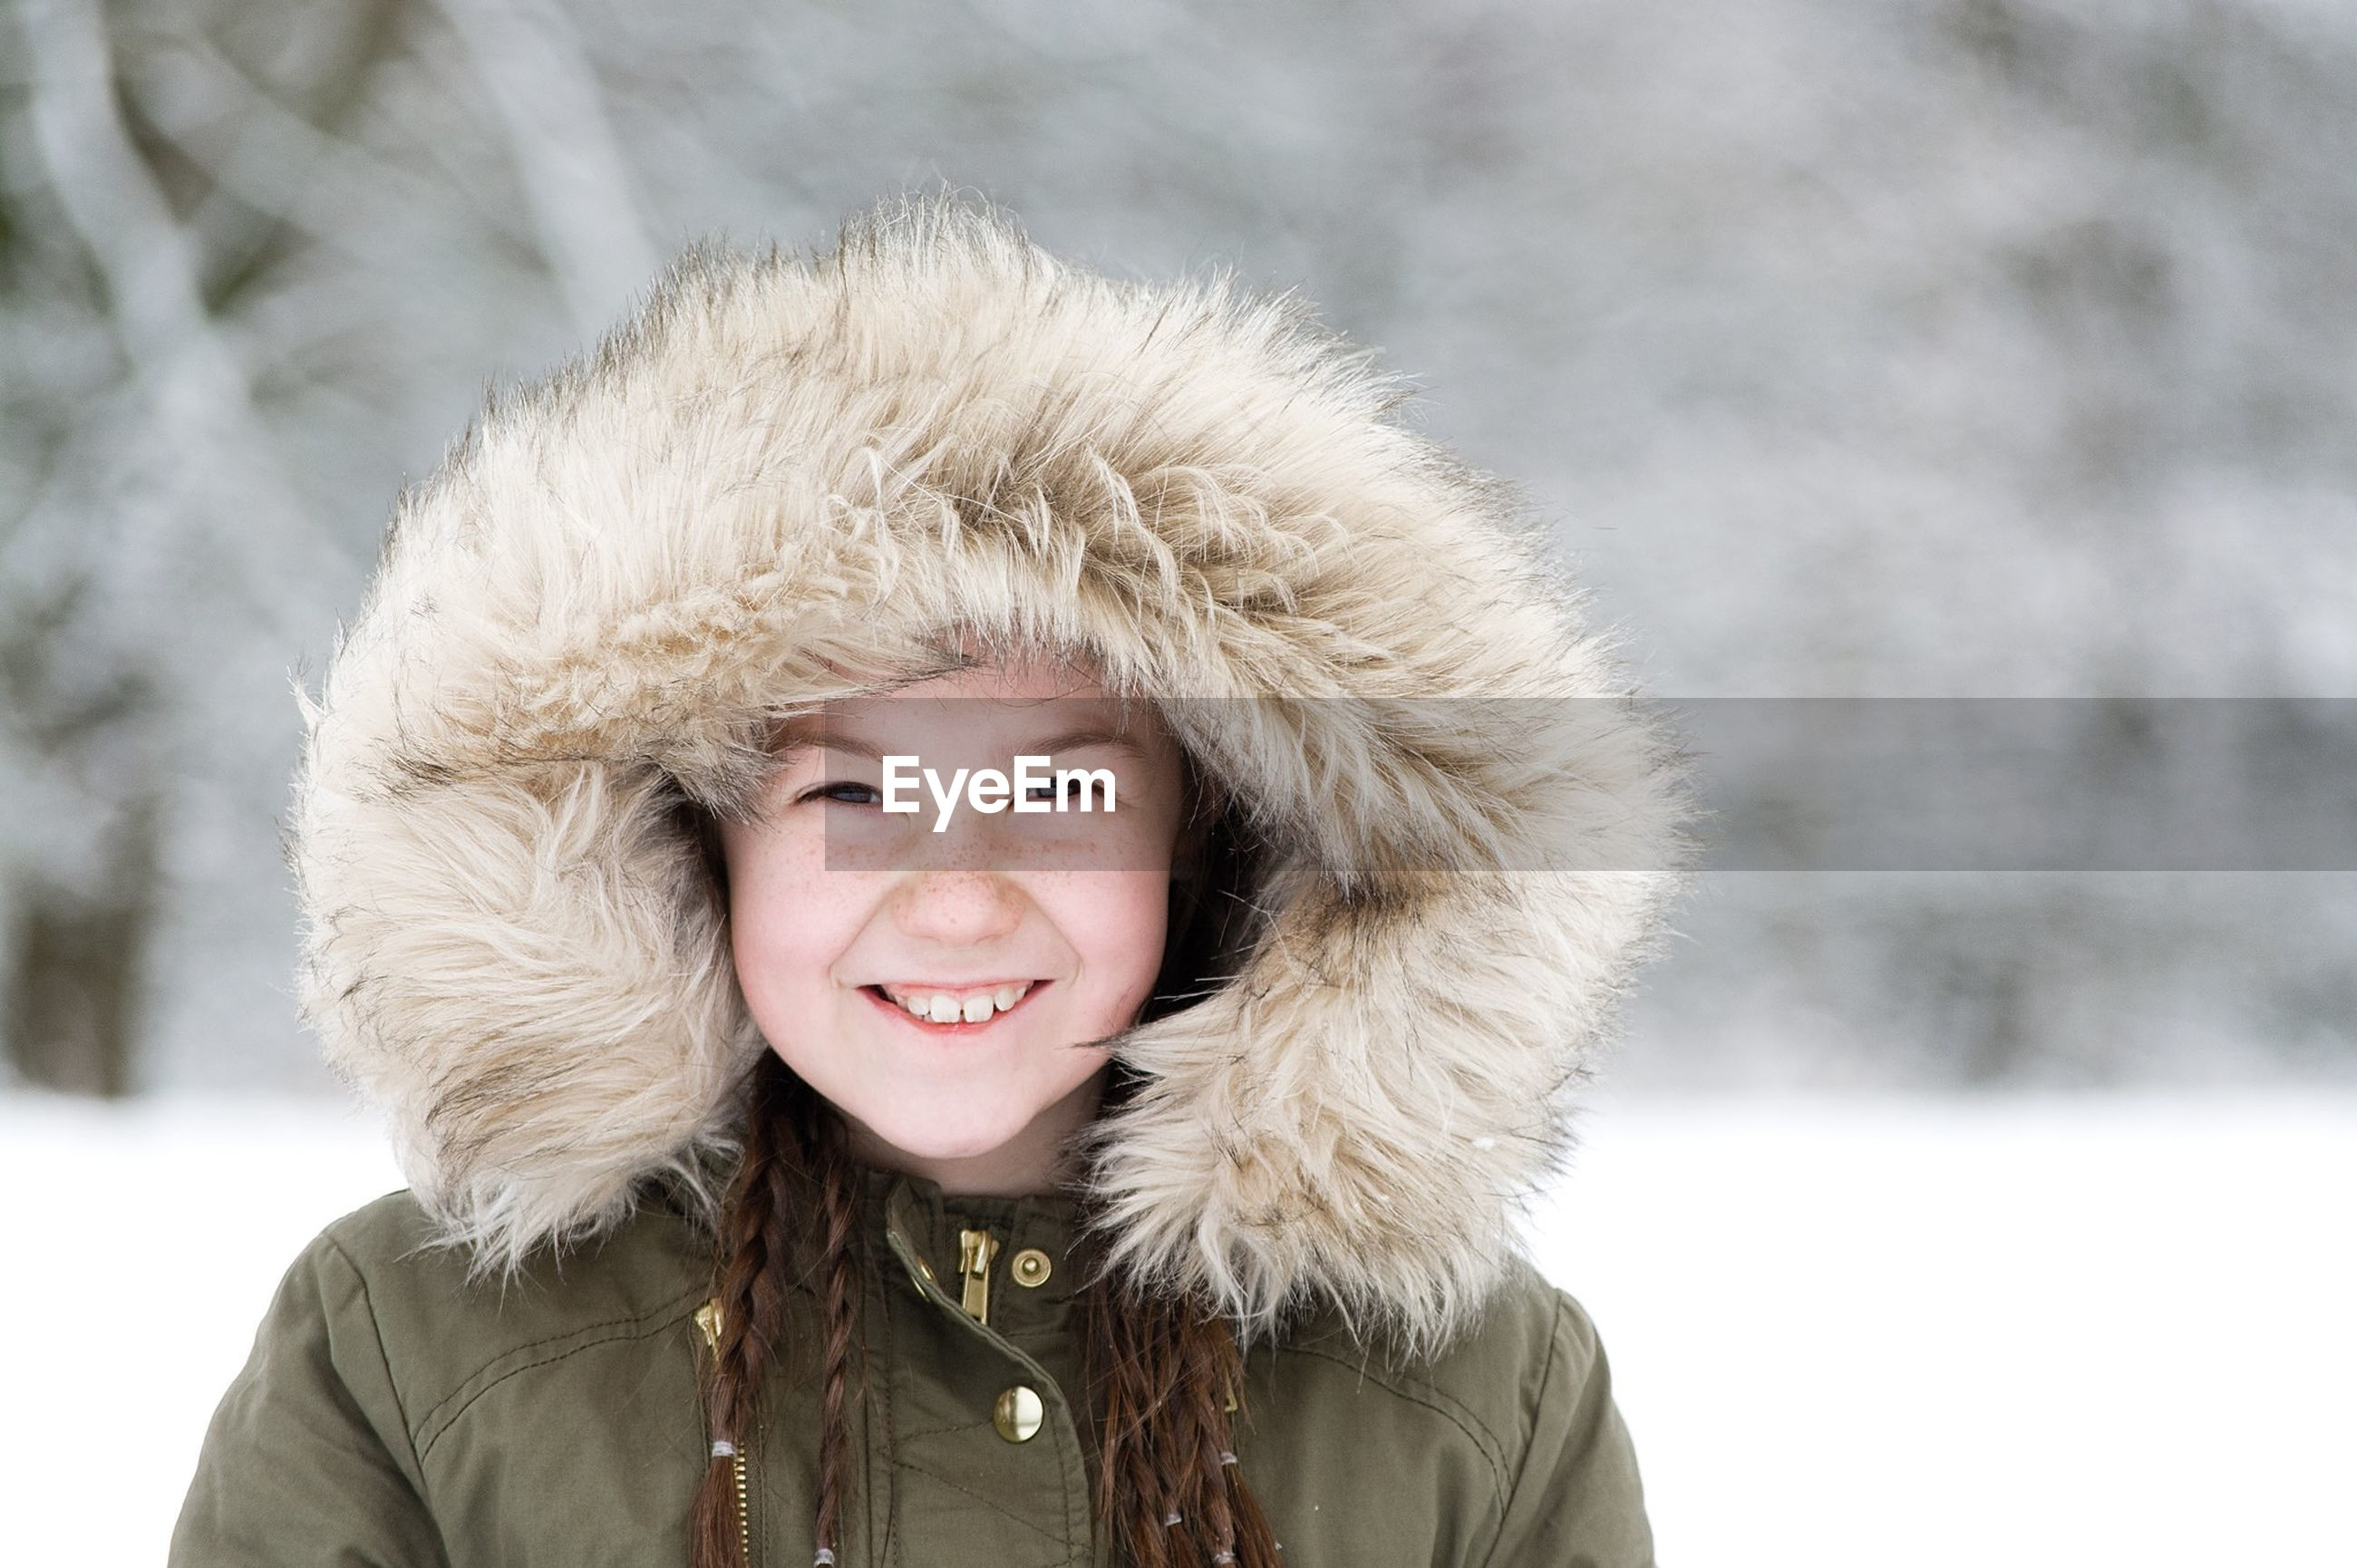 portrait, person, looking at camera, smiling, front view, winter, lifestyles, young adult, headshot, cold temperature, happiness, snow, focus on foreground, leisure activity, warm clothing, young women, toothy smile, season